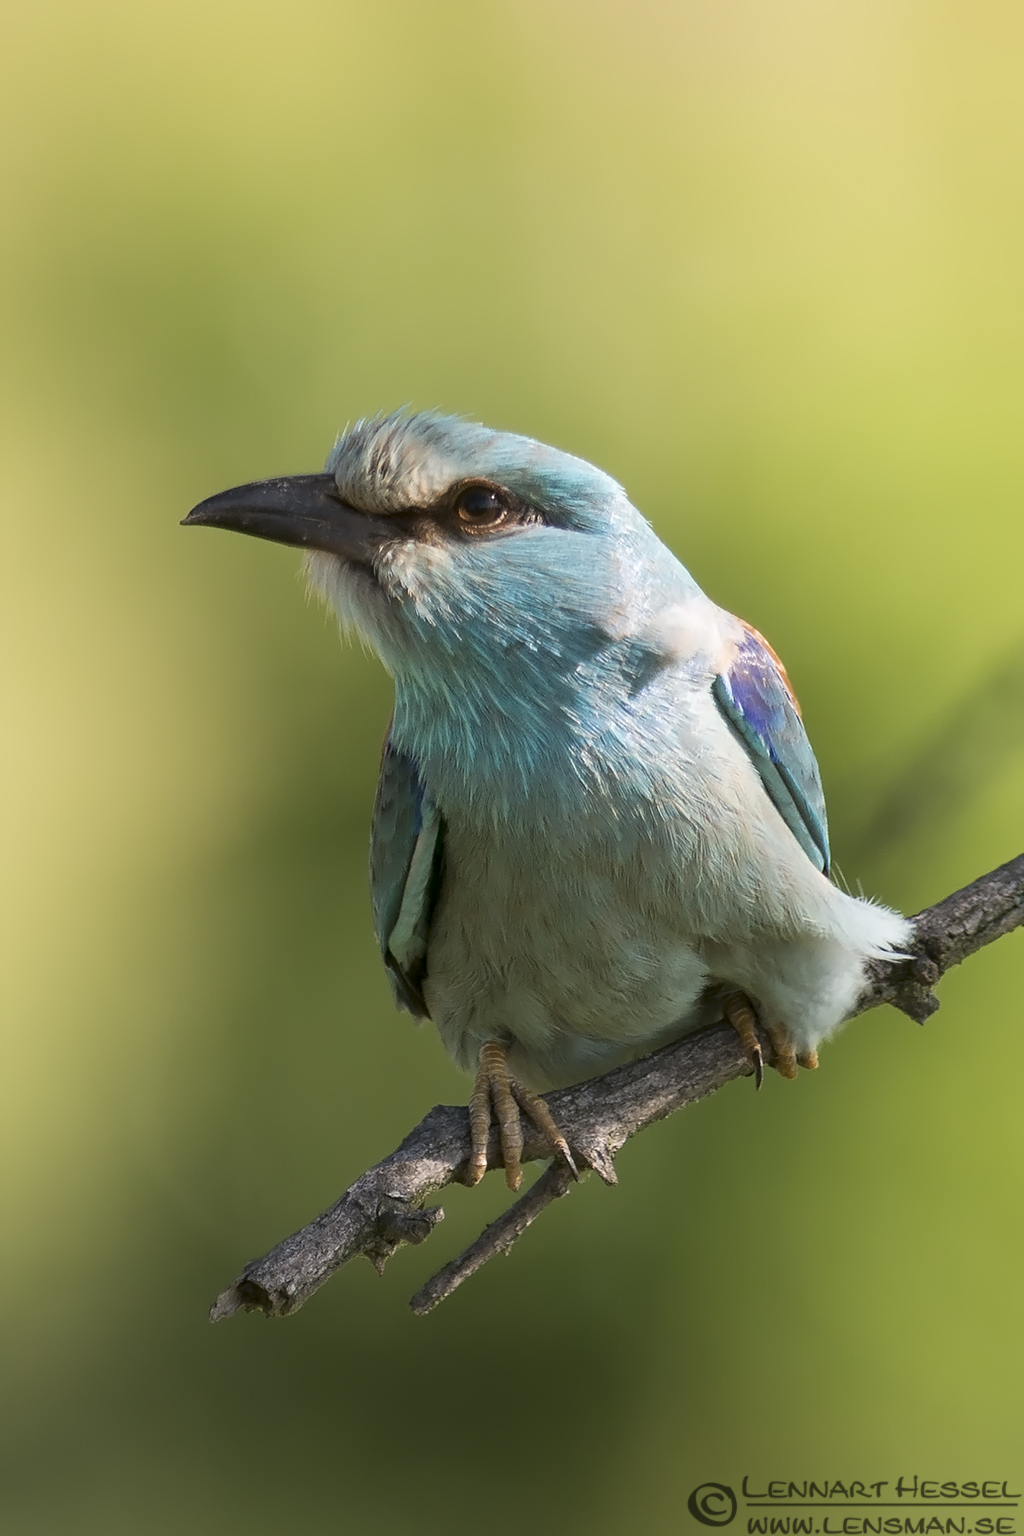 European Roller photo from Hungary